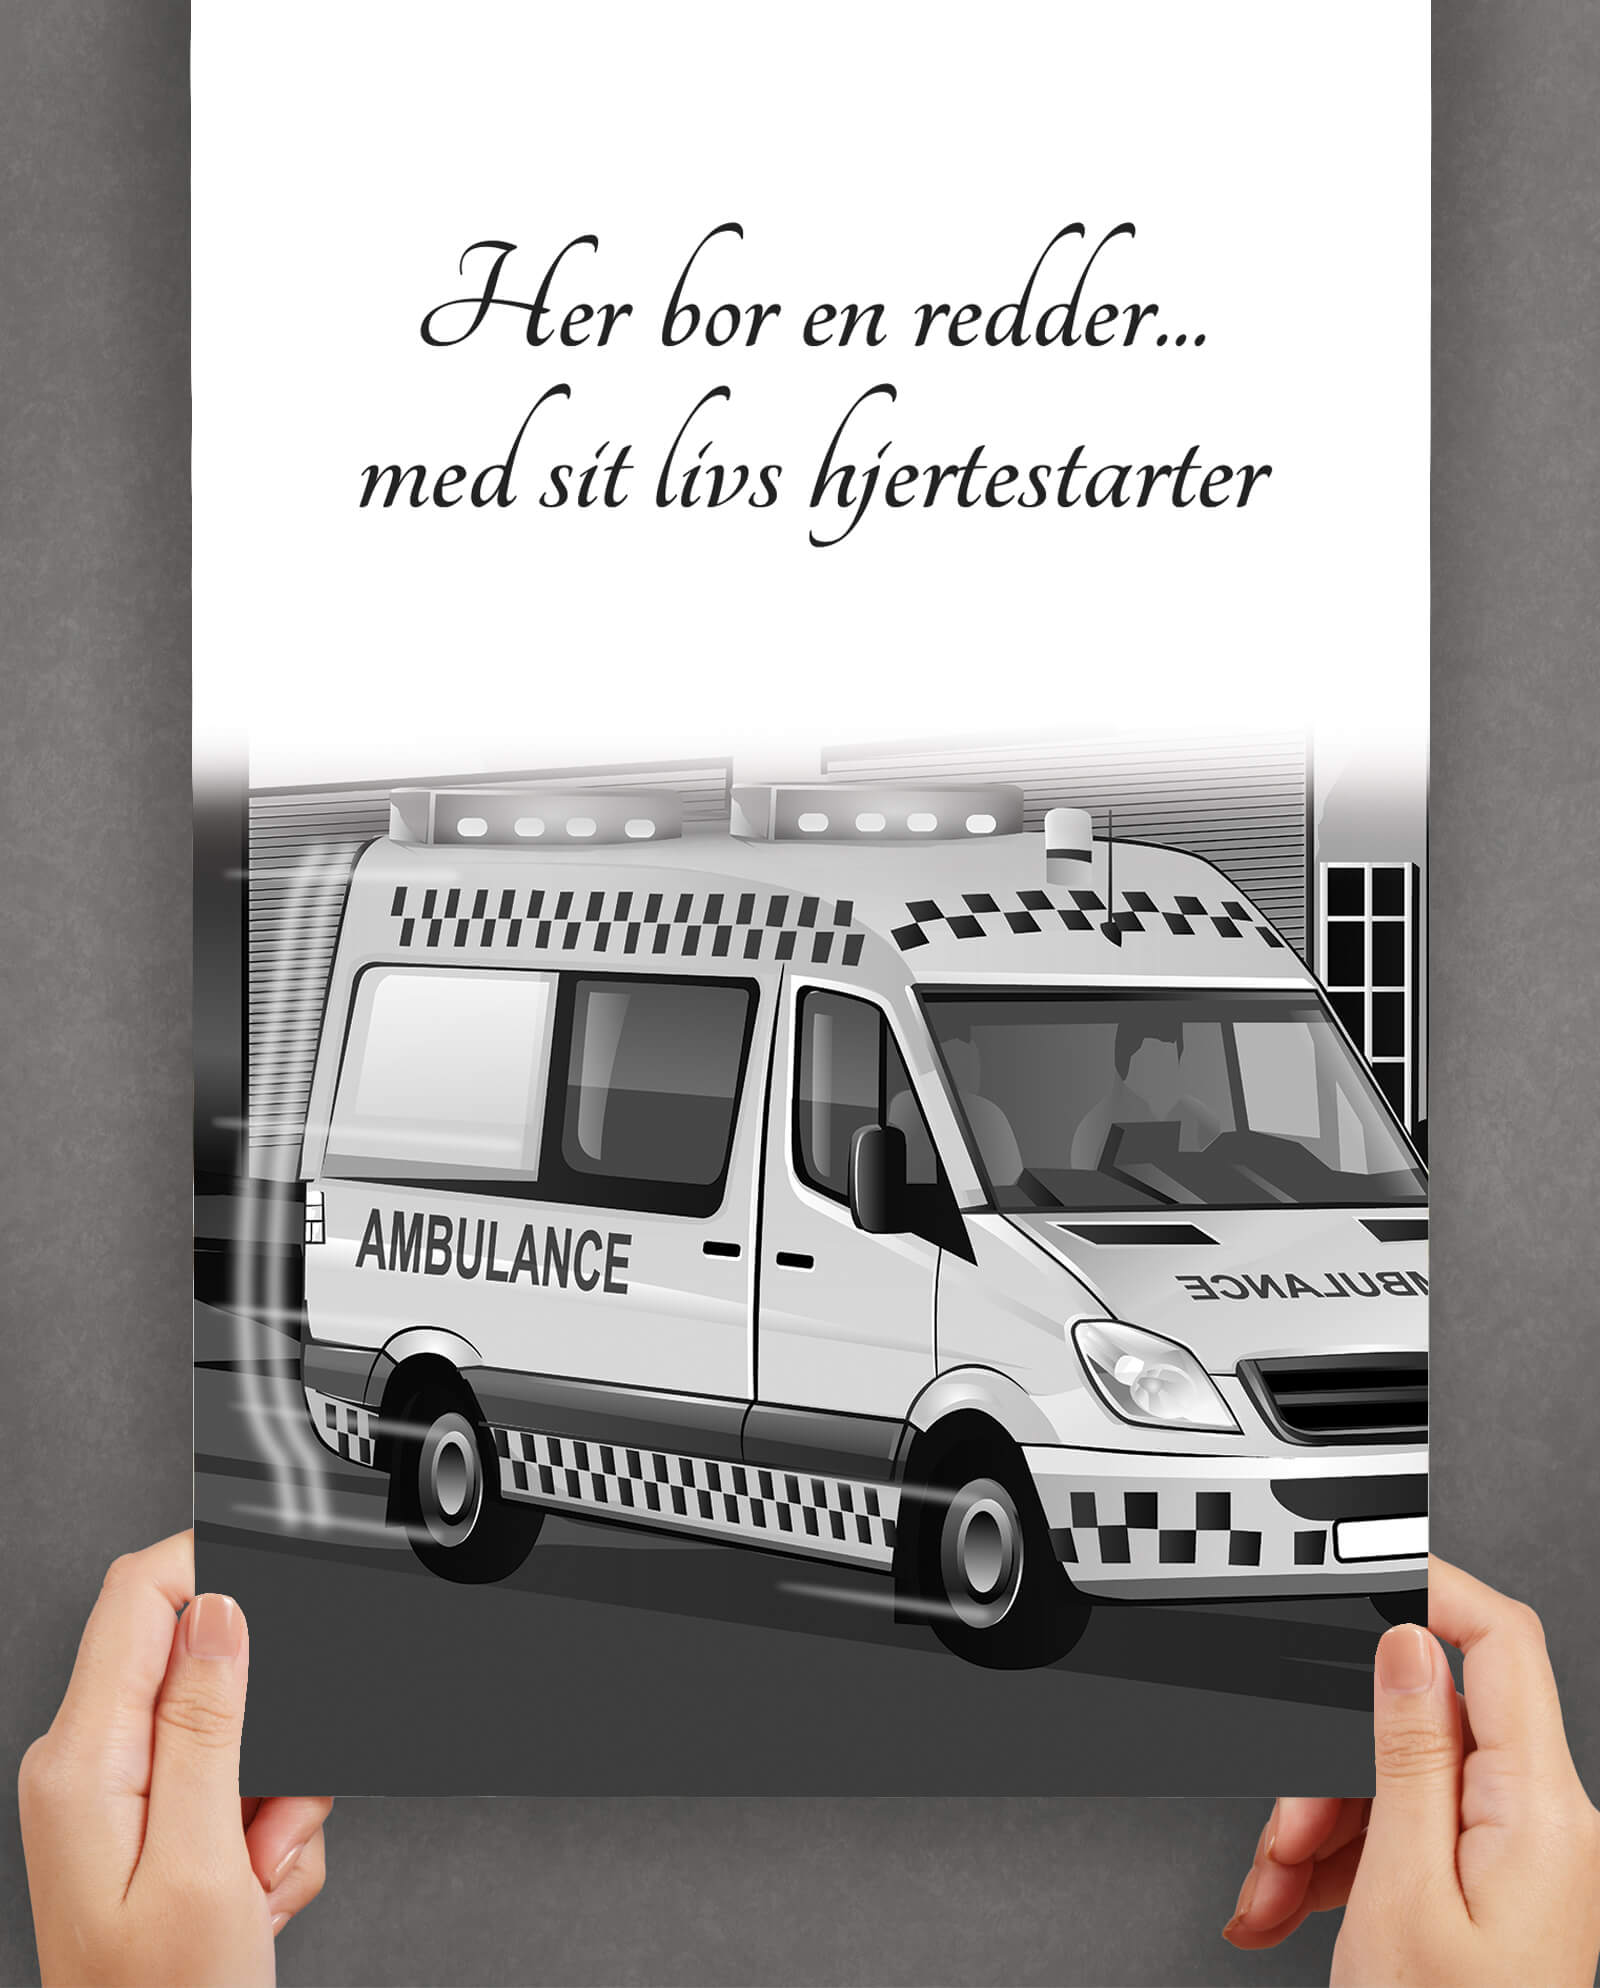 Ambulaceredder-her-bor-en